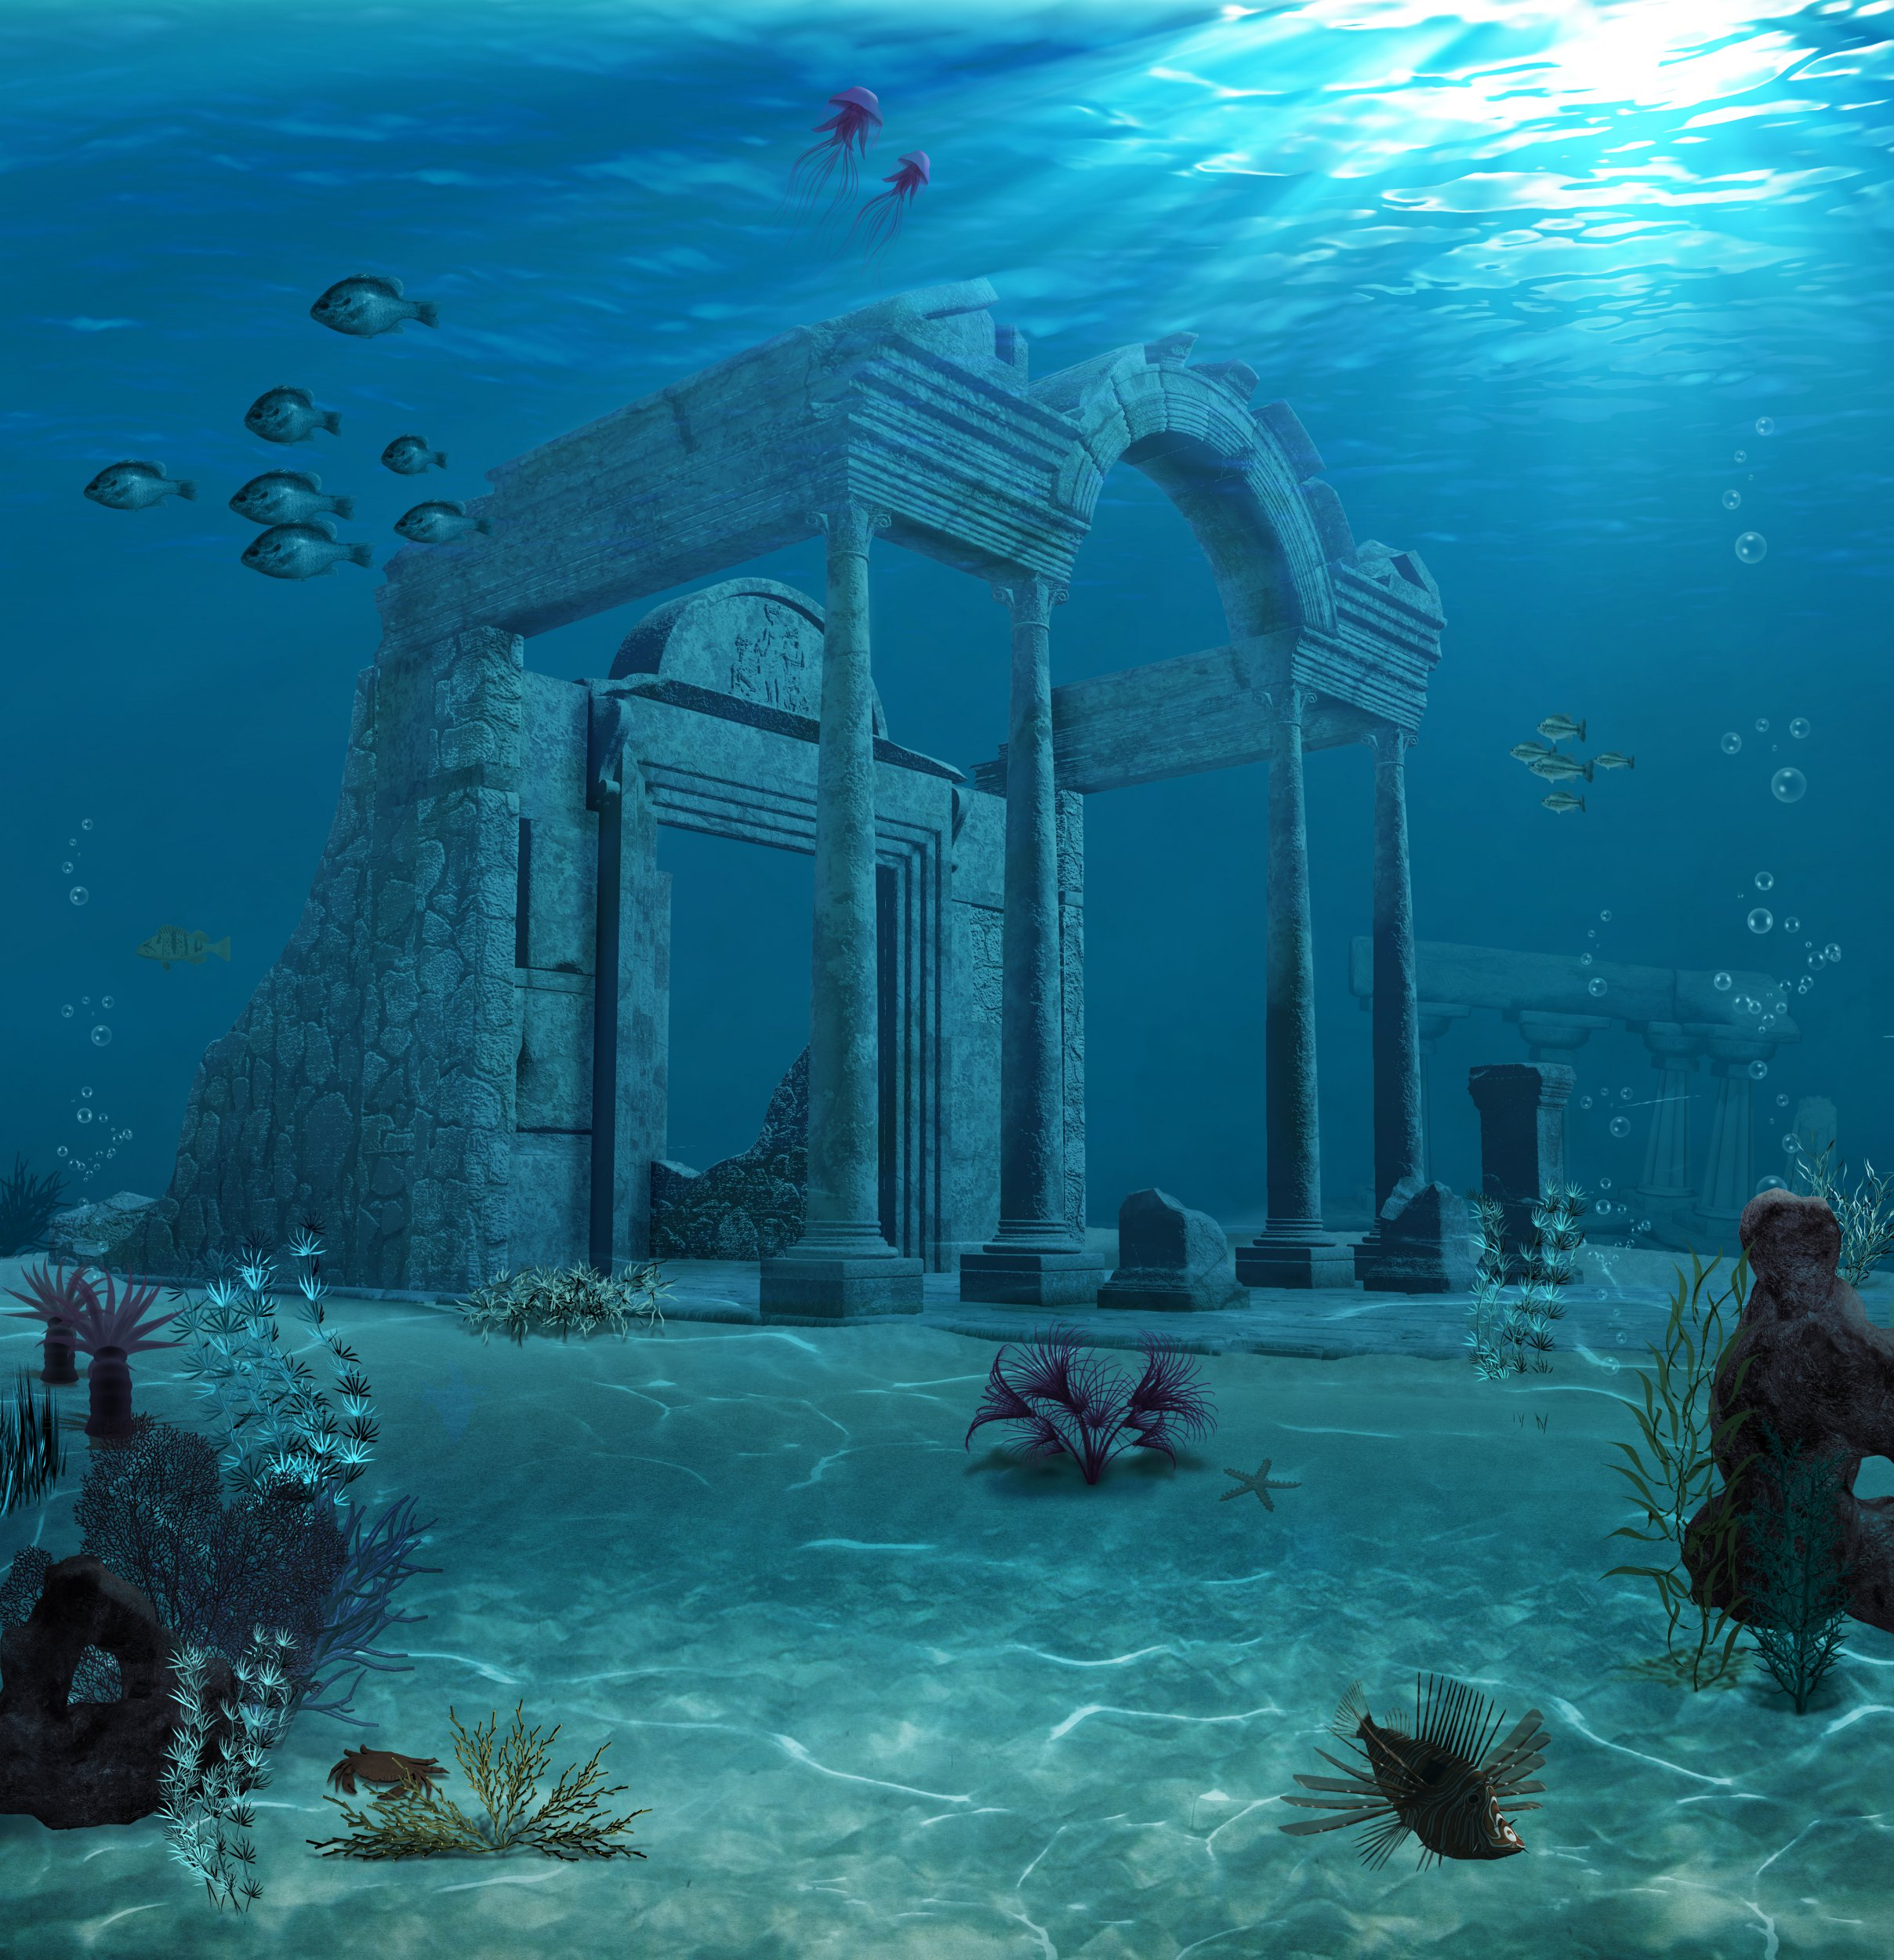 3d illustration of the sunken ruins of an ancient Atlantis type civilization.